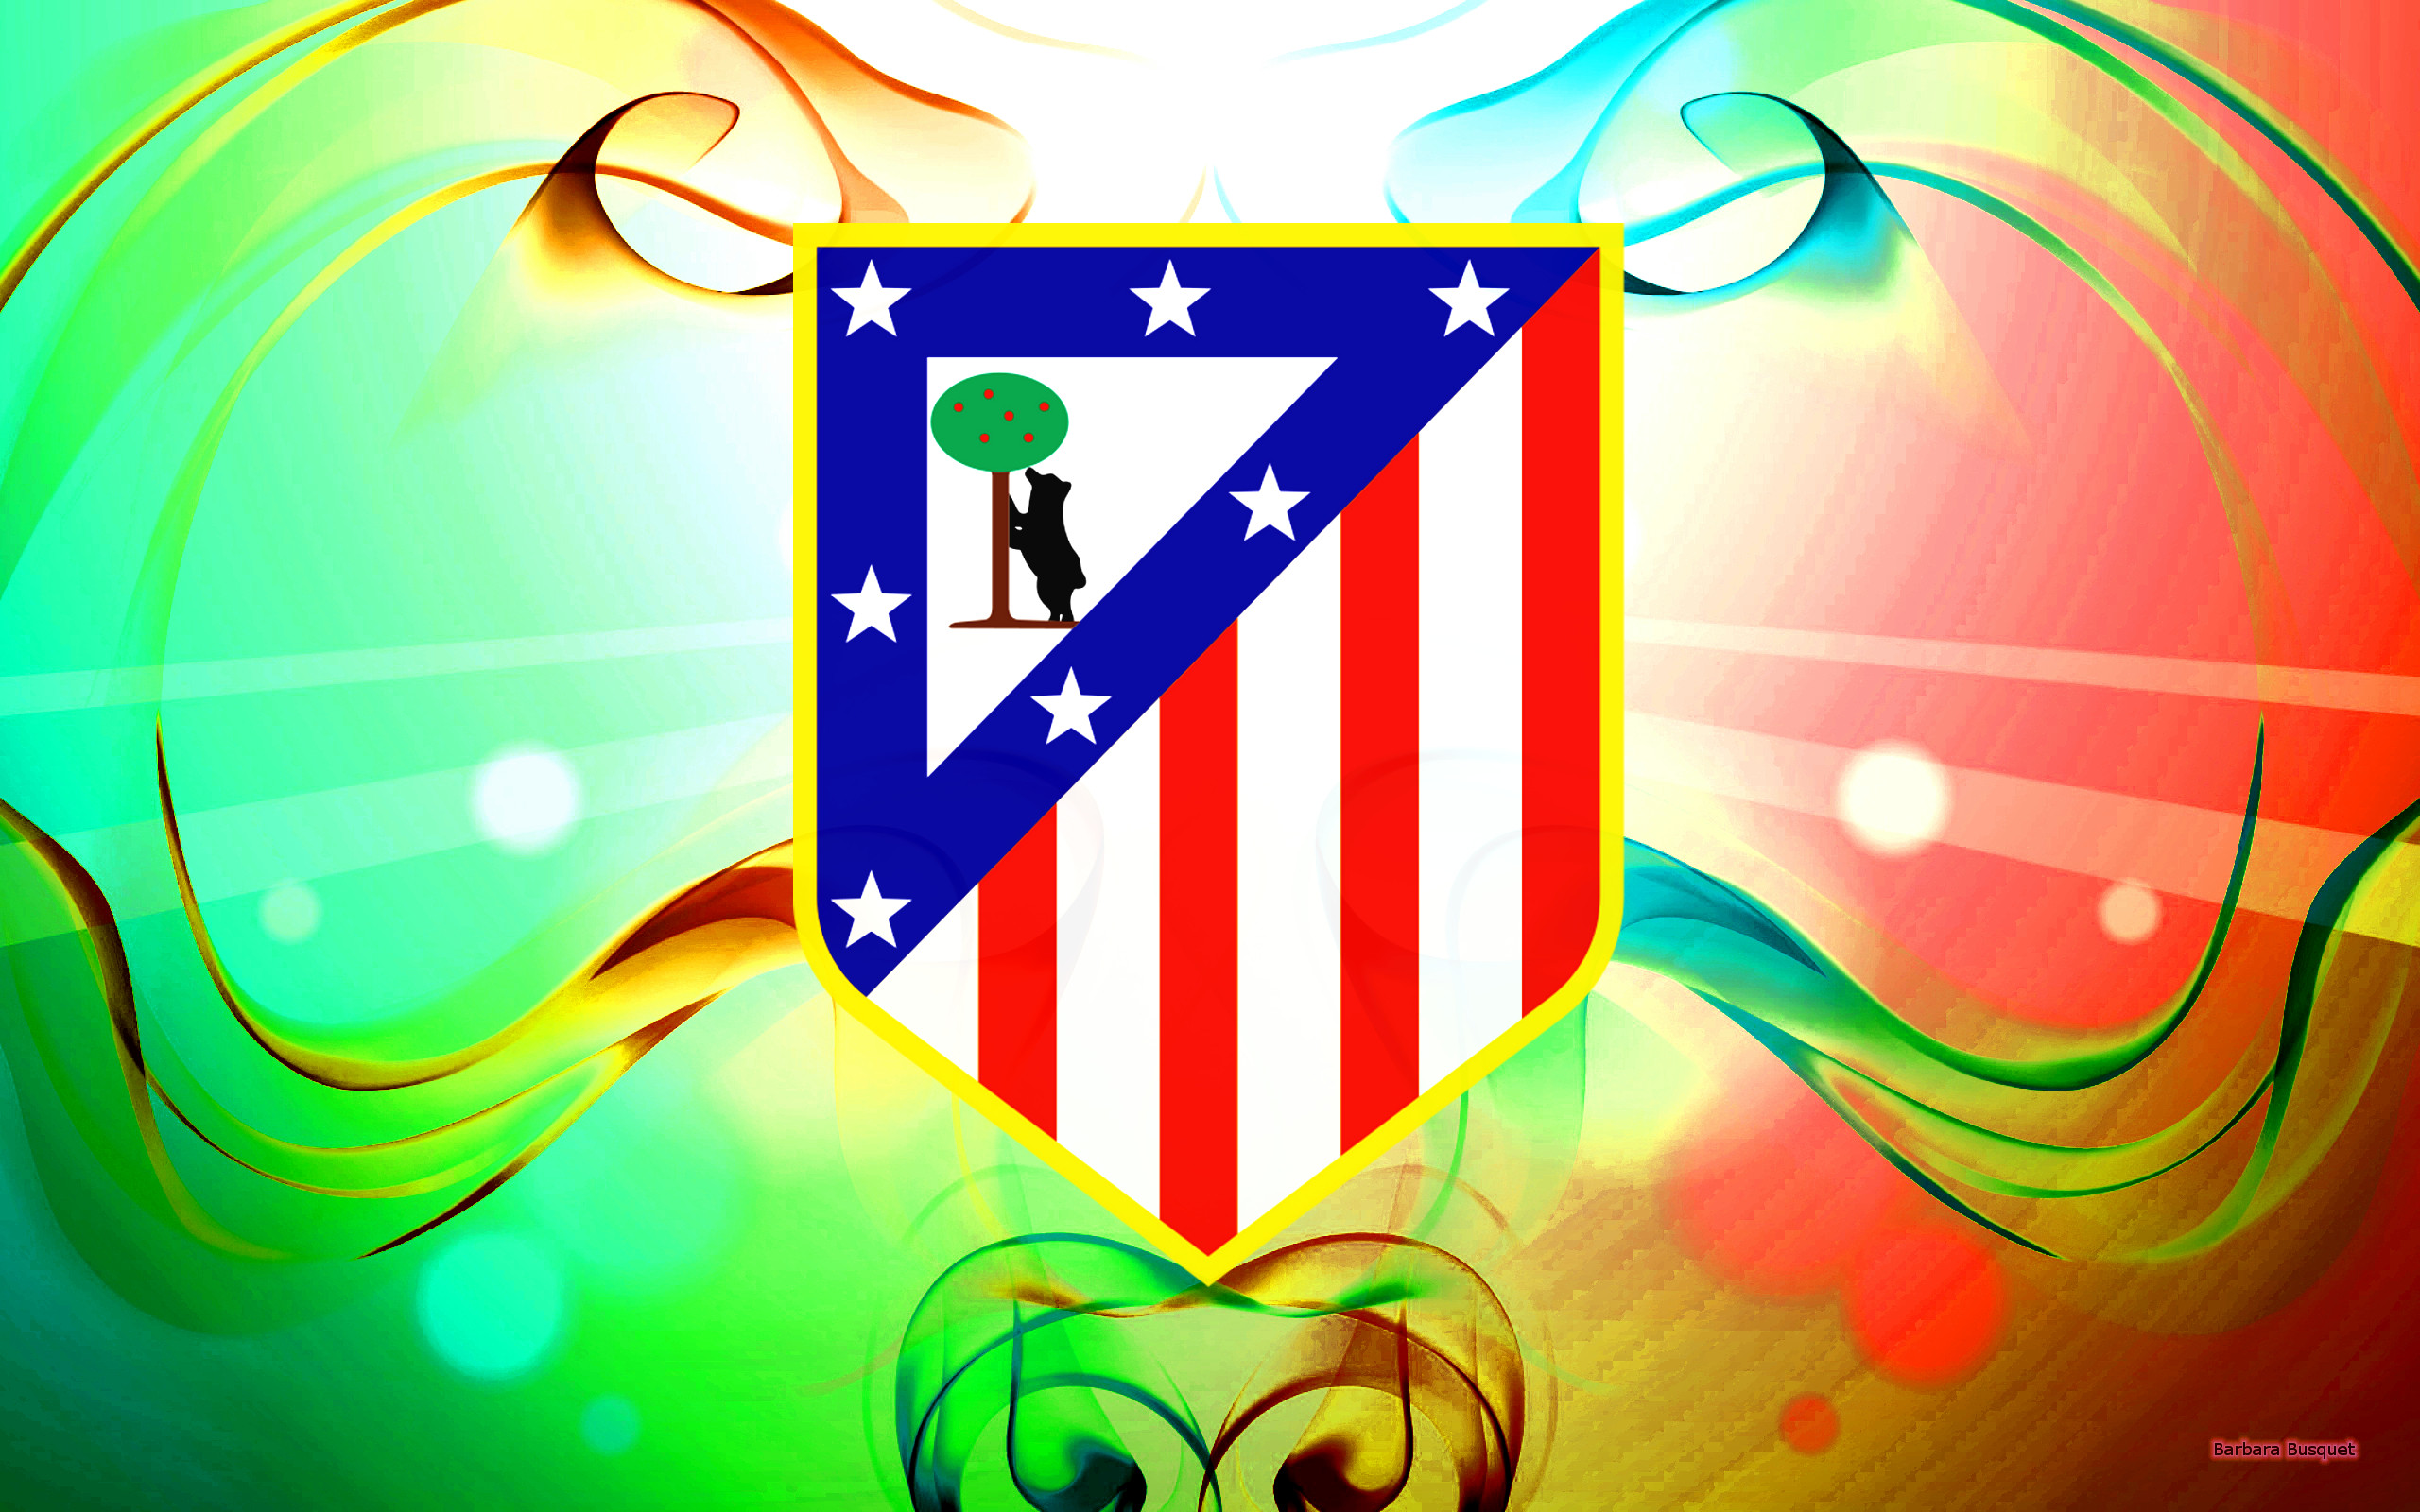 Wallpaper For Phone Fall Atletico Madrid Barbaras Hd Wallpapers